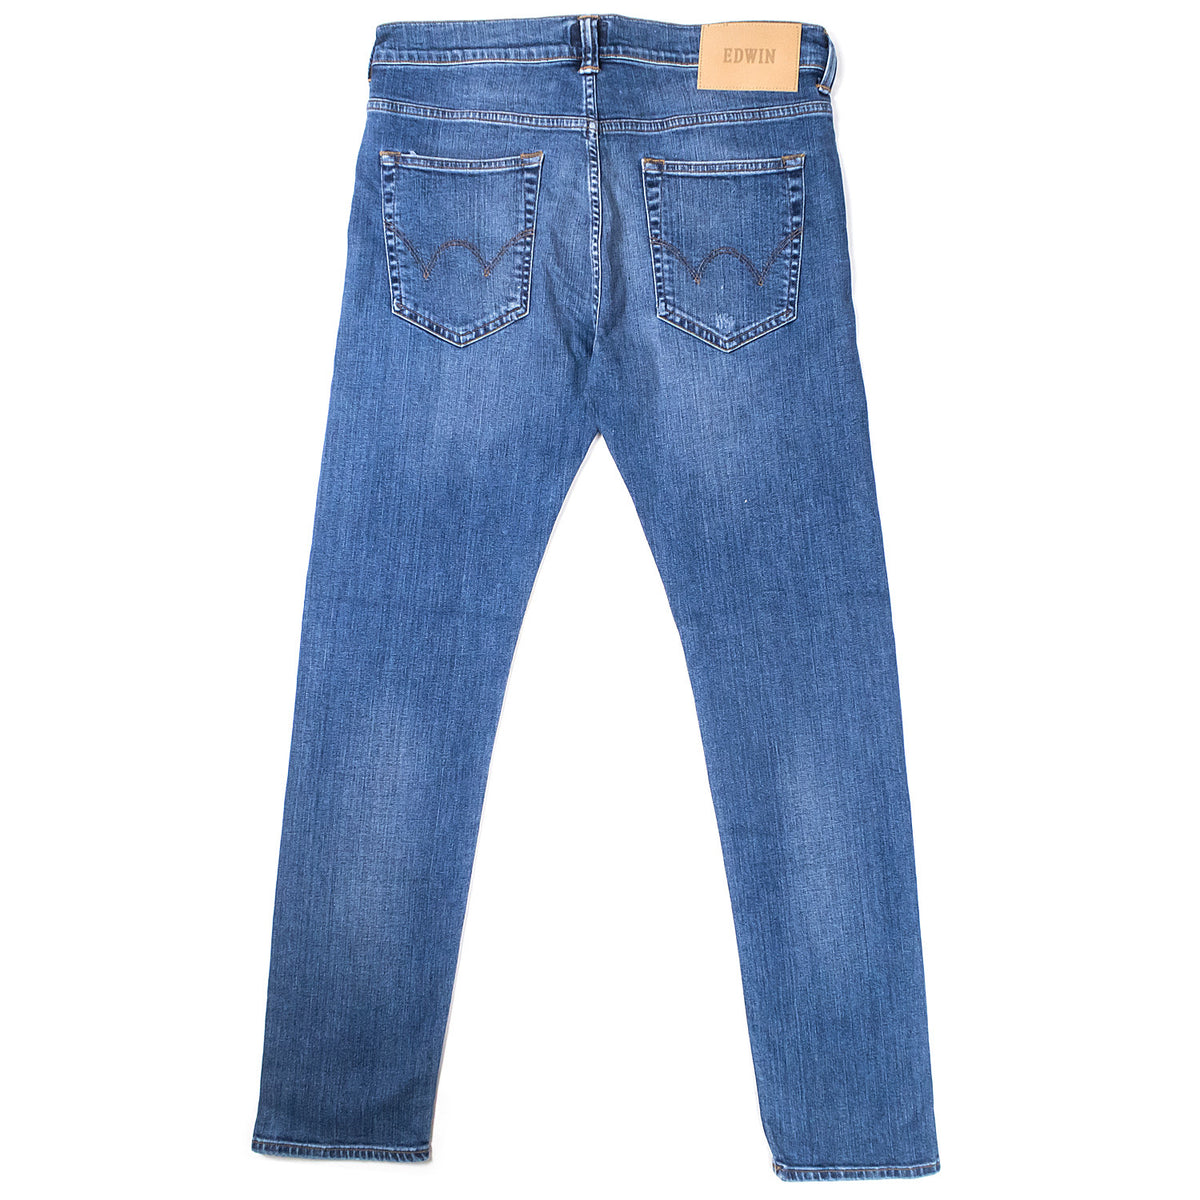 Edwin - ED-80 Night Blue Denim - Blue Baroque Wash